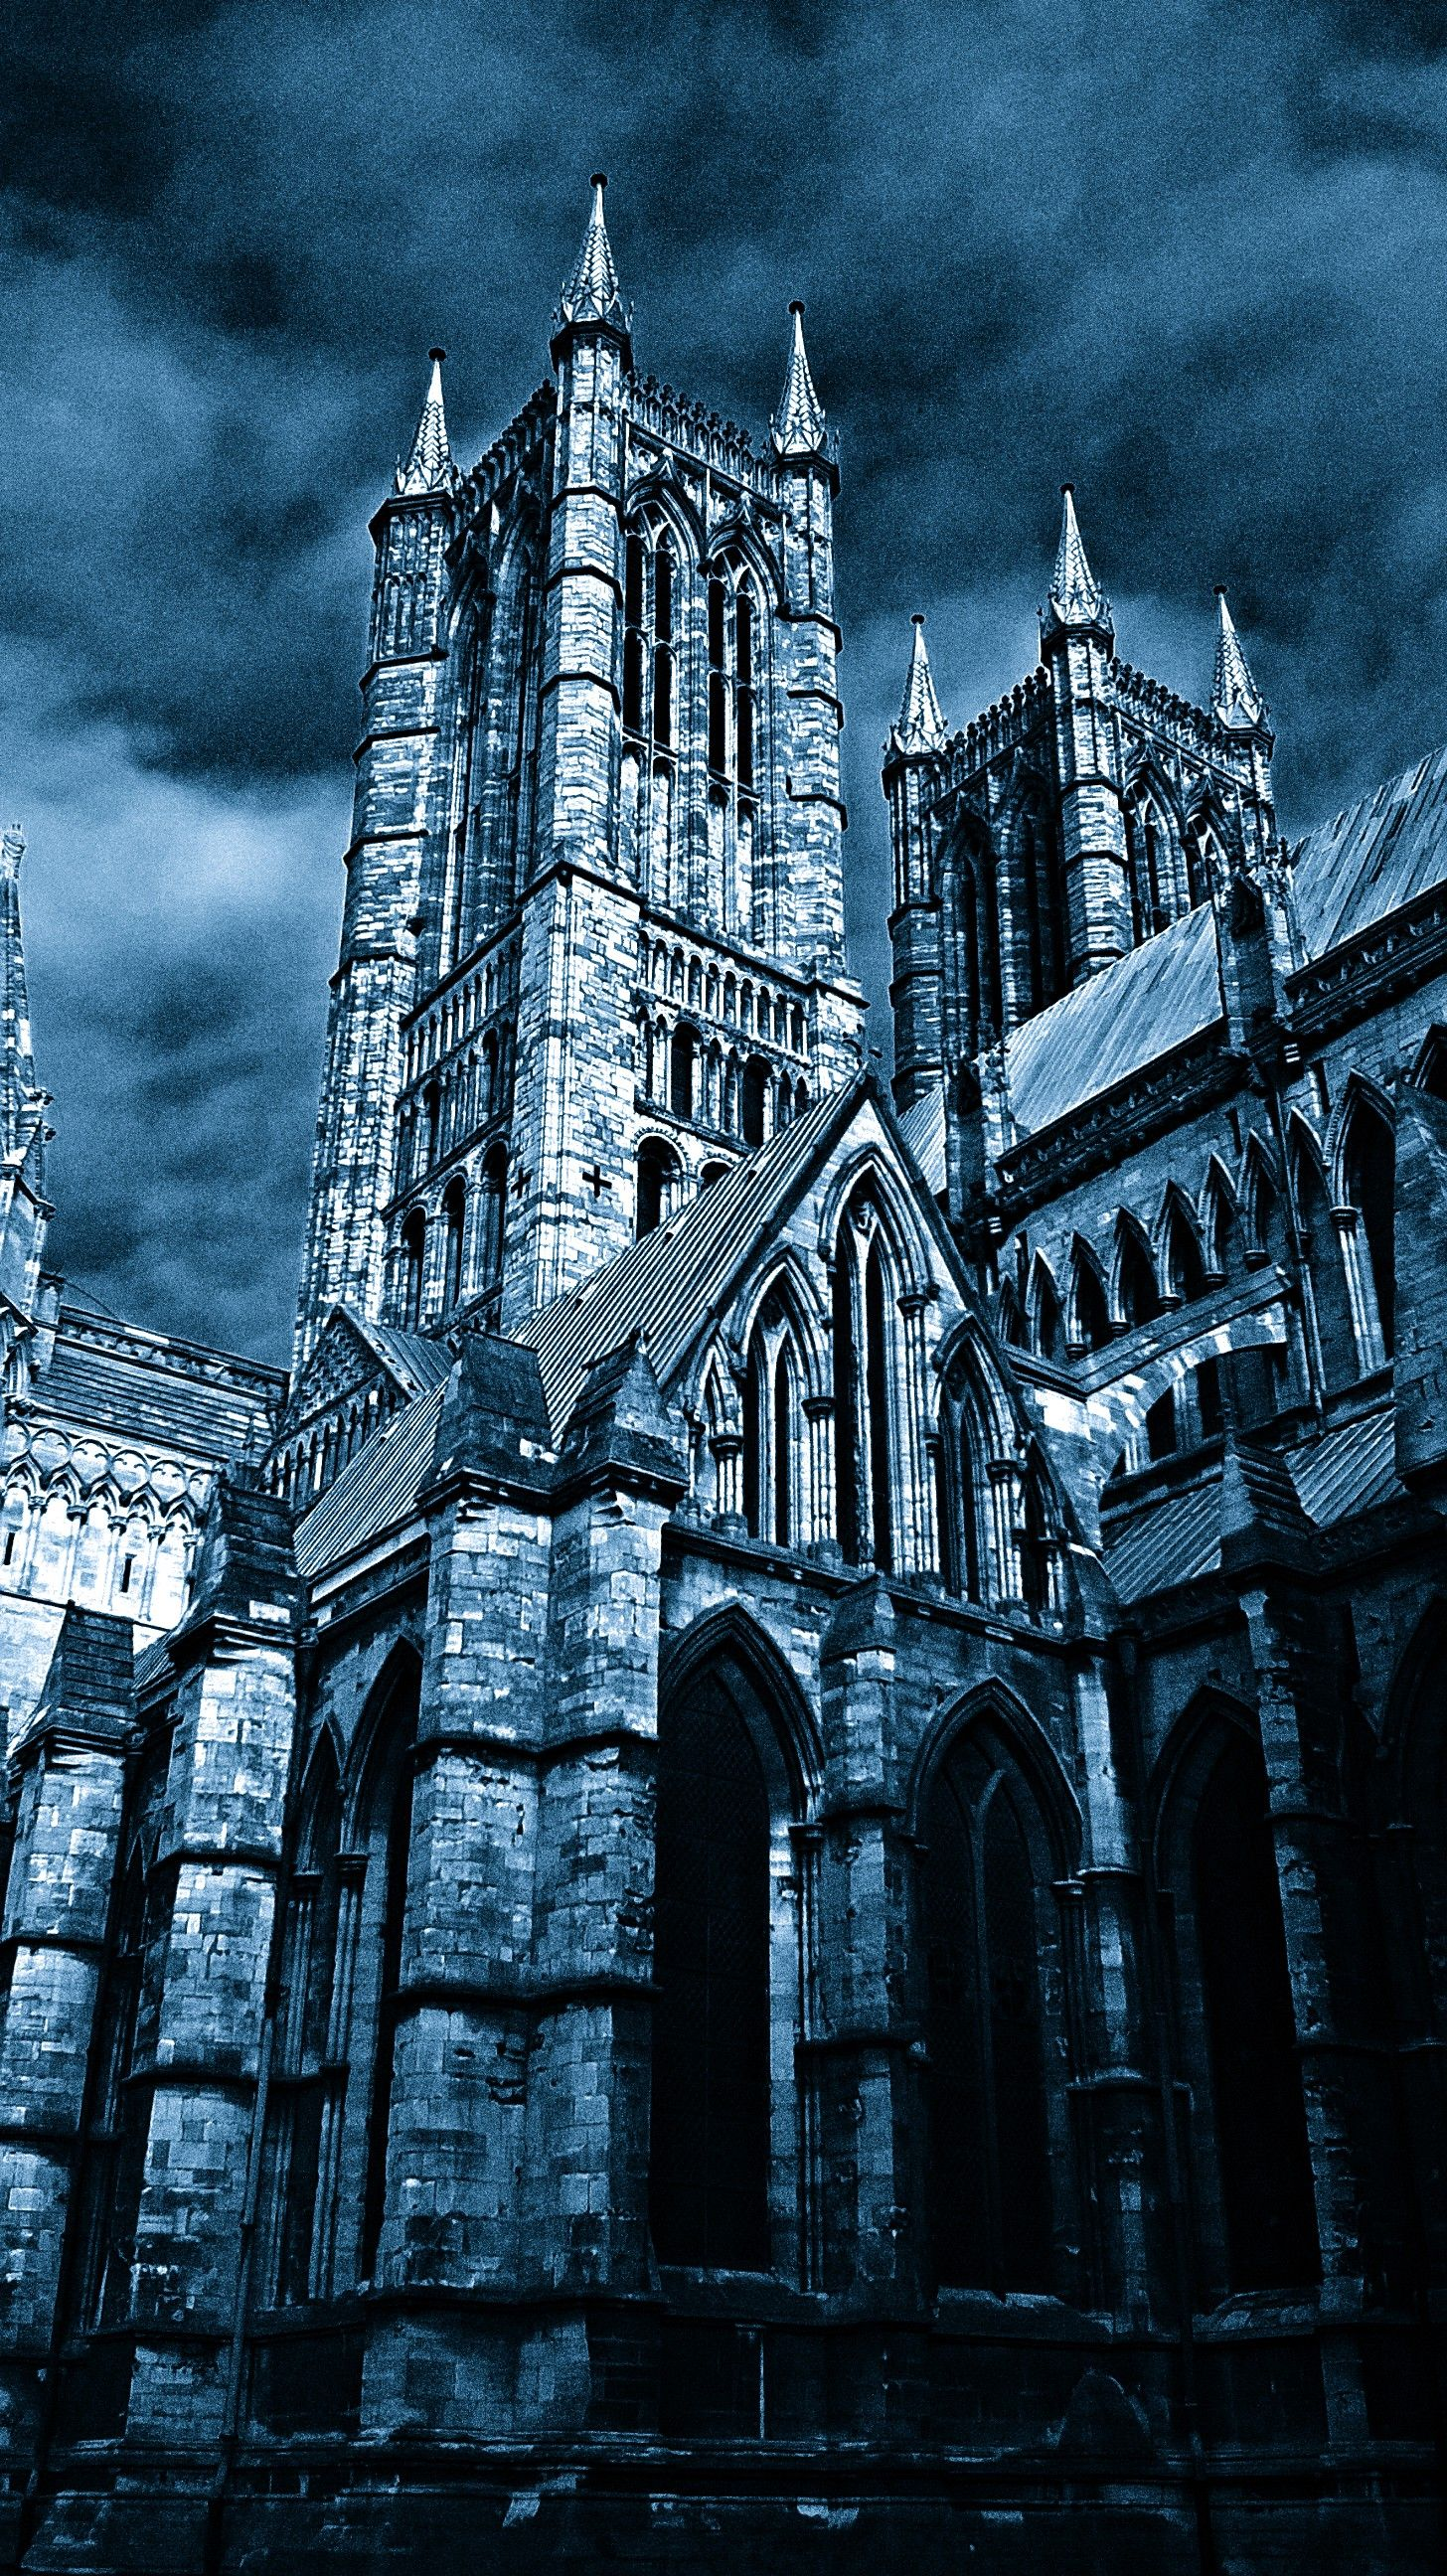 #Lincolnshire #Lincolncathedral #Edit #Gothic #Blue #Grey